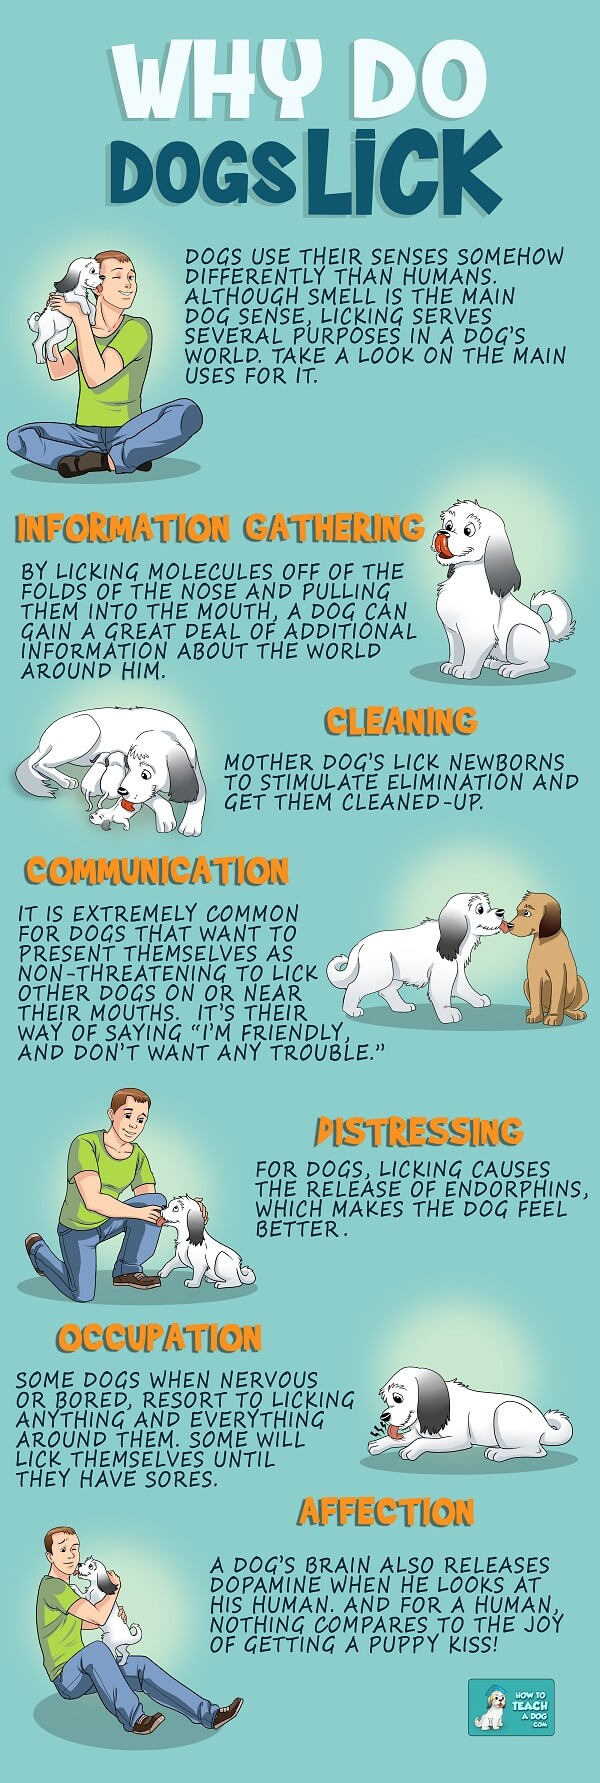 Why do dogs lick - infographic